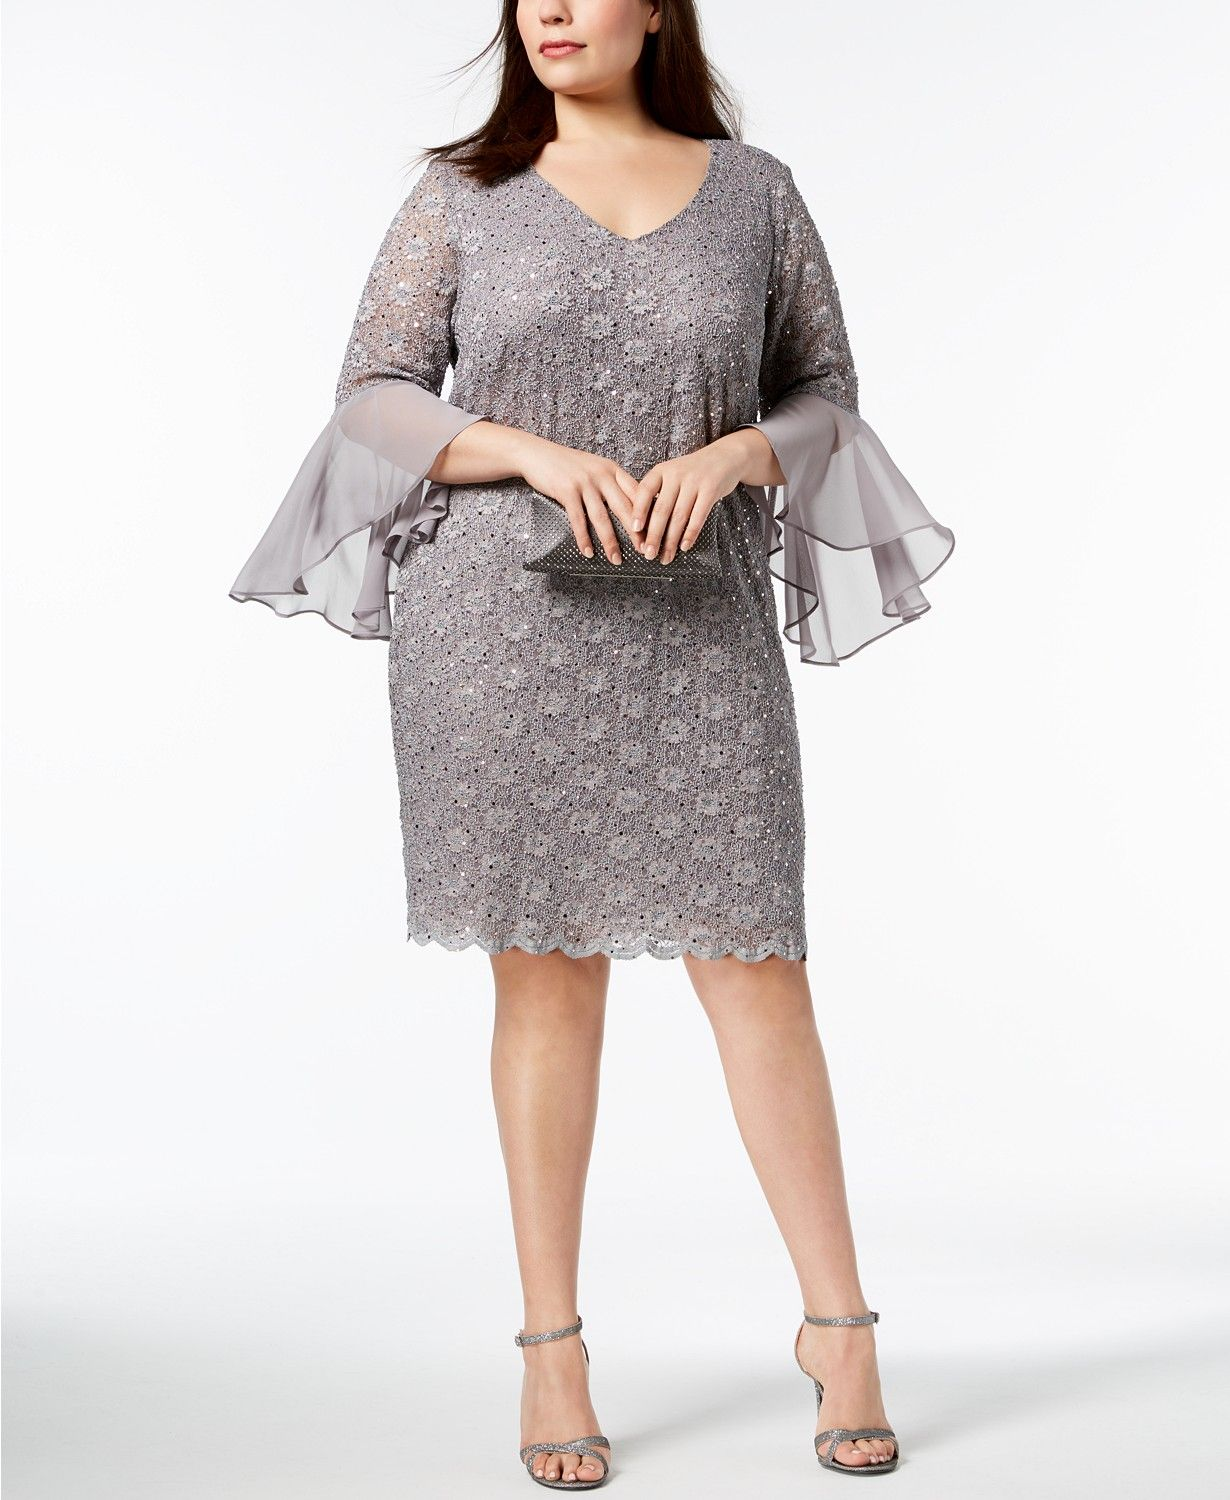 66b3280e28 Wedding Without Suit Jacket. Connected Plus Size Sequined Lace Bell-Sleeve  Dress - Dresses - Women - Macy s